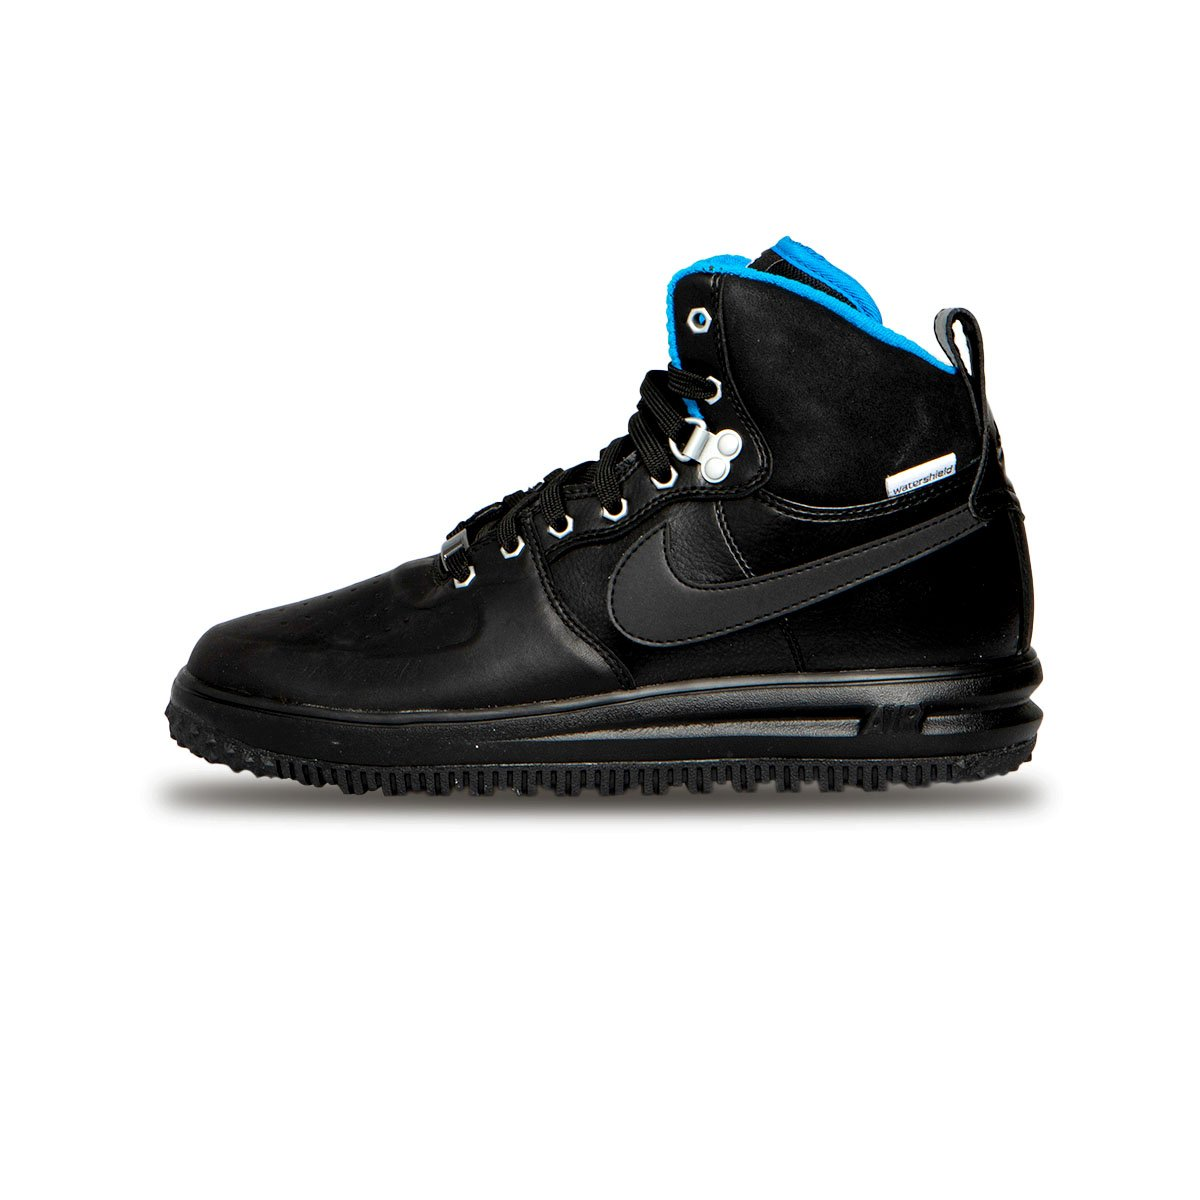 designer fashion 2b350 41a8e Nike Lunar Force 1 Duckboot  17 bordeaux   black 916682-601   Bludshop.com